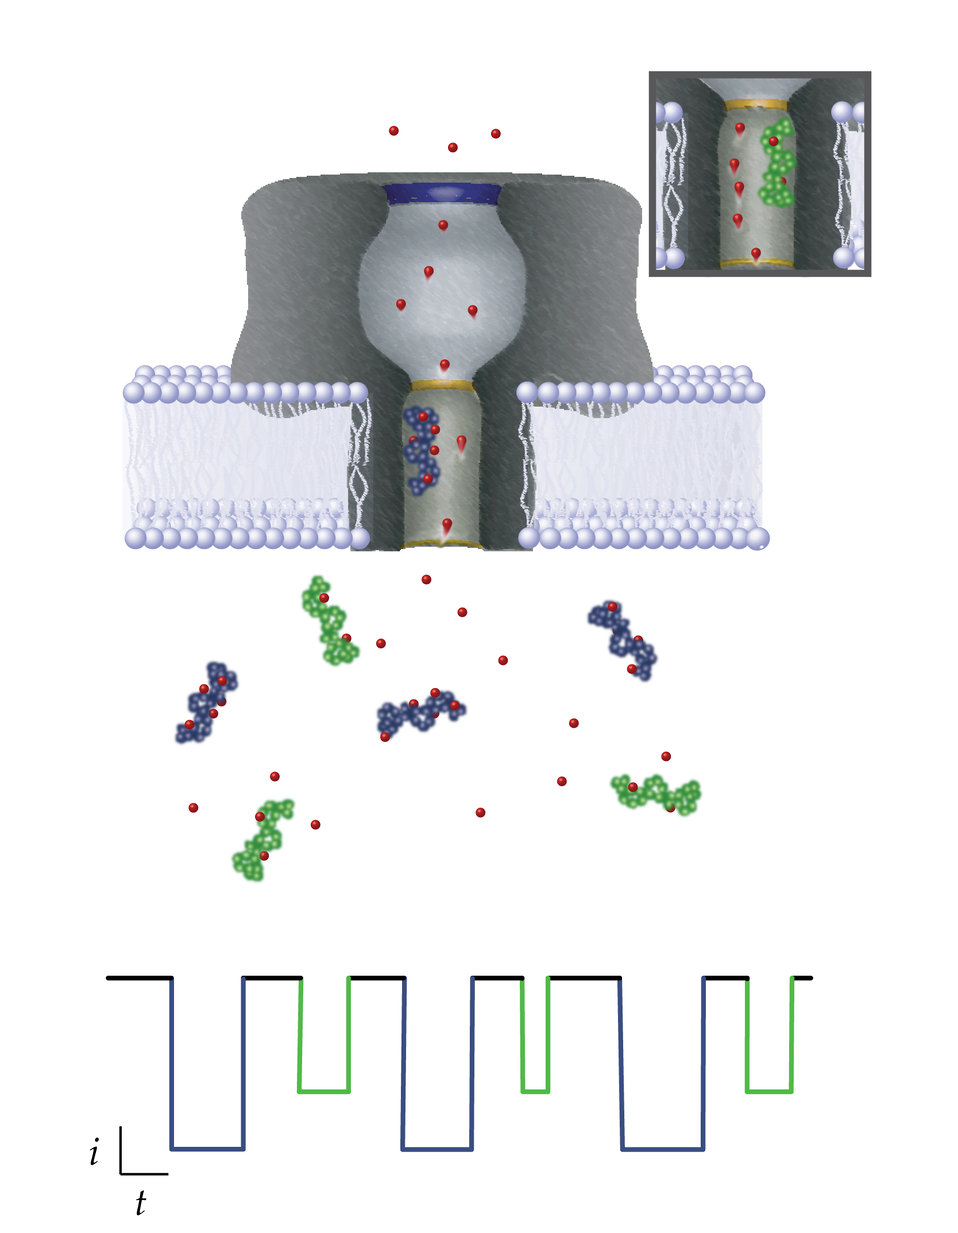 Nanopore-based single molecule mass spectrometry